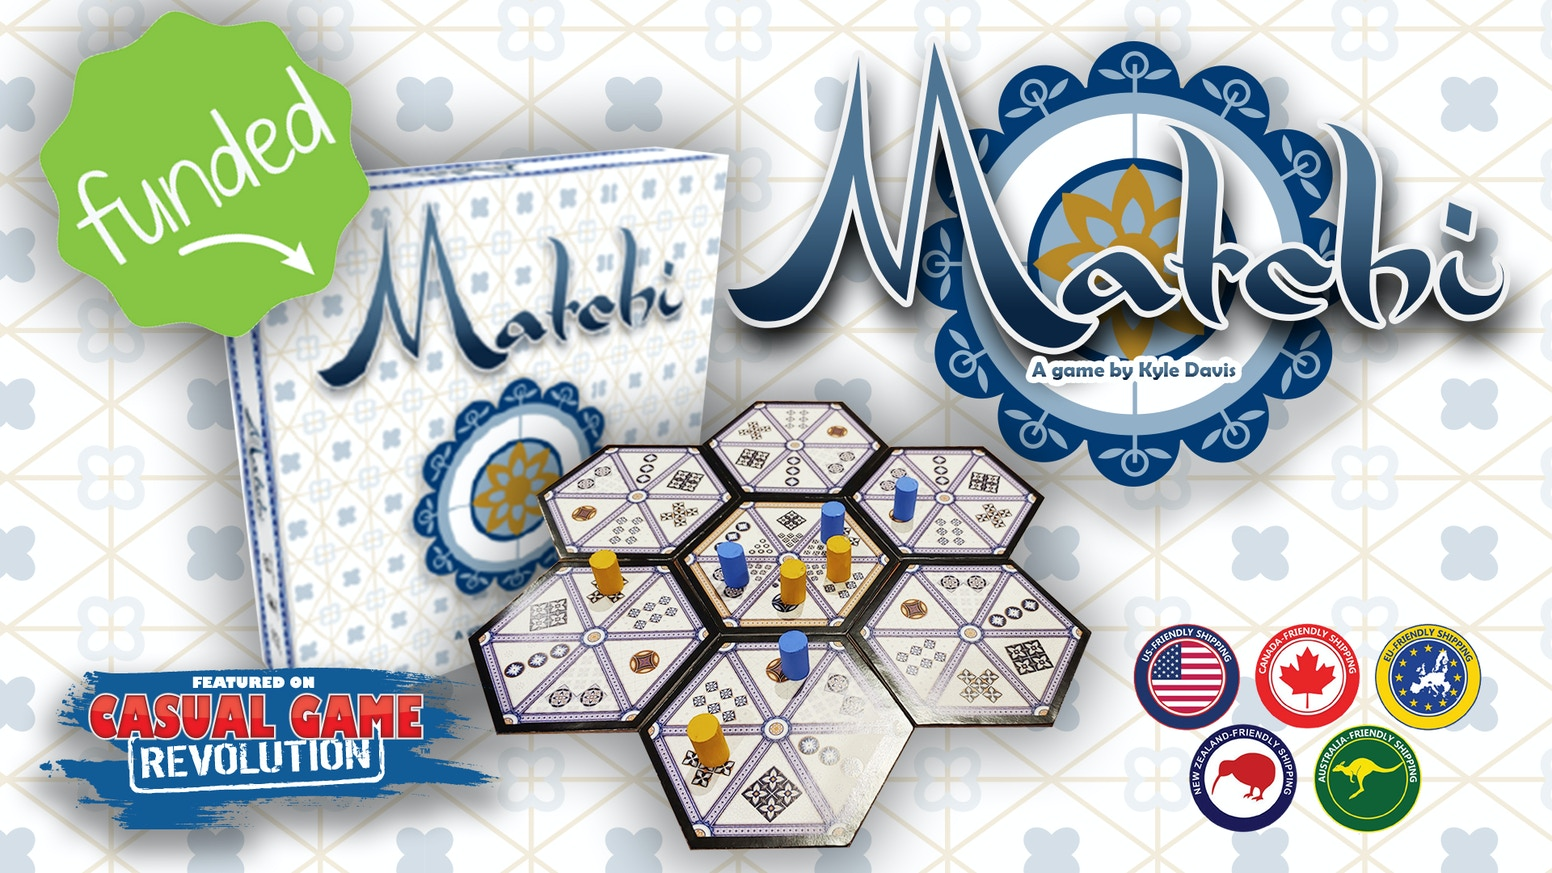 Matchi is an addictive 2-player board game that feels timeless in its simplicity, presented in a beautiful Moroccan style.